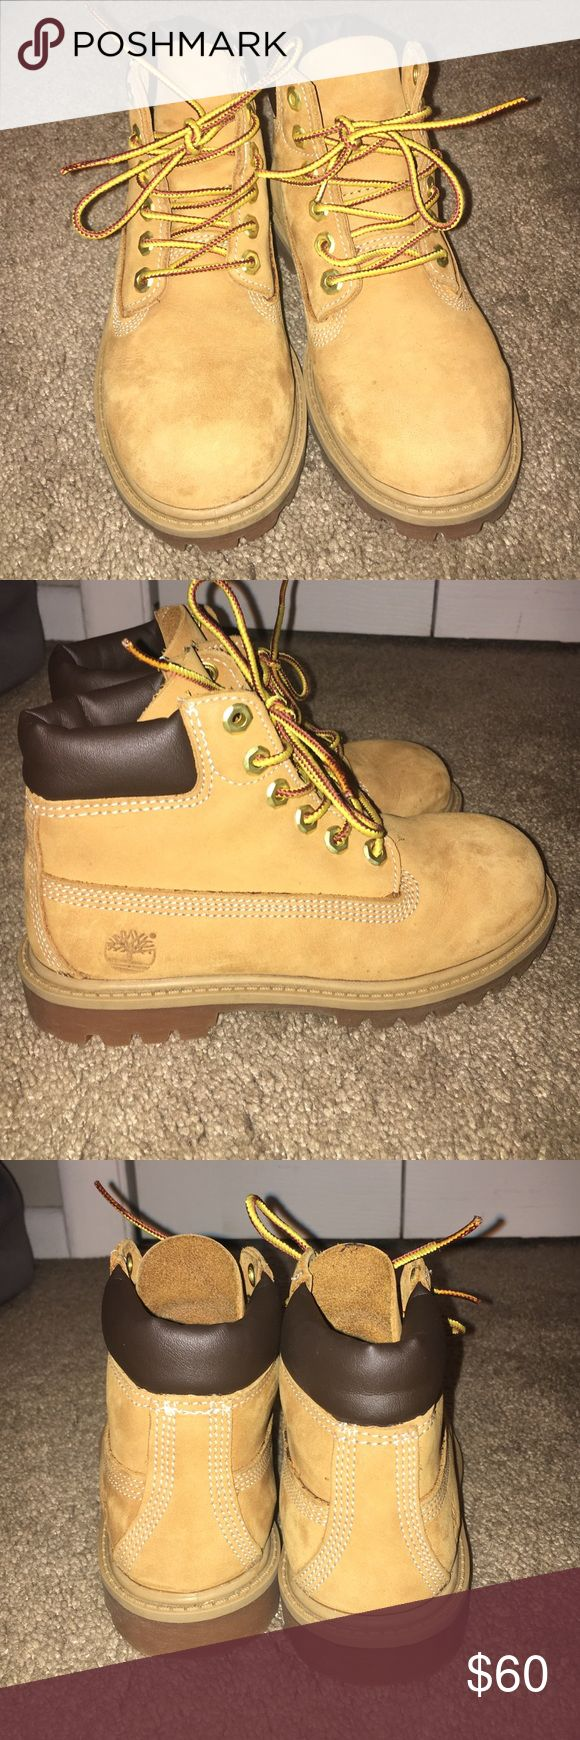 Kids timberland boots Bought these for my little sister she wore them once or twice she is very picky. They look brand new! Timberland Shoes Boots